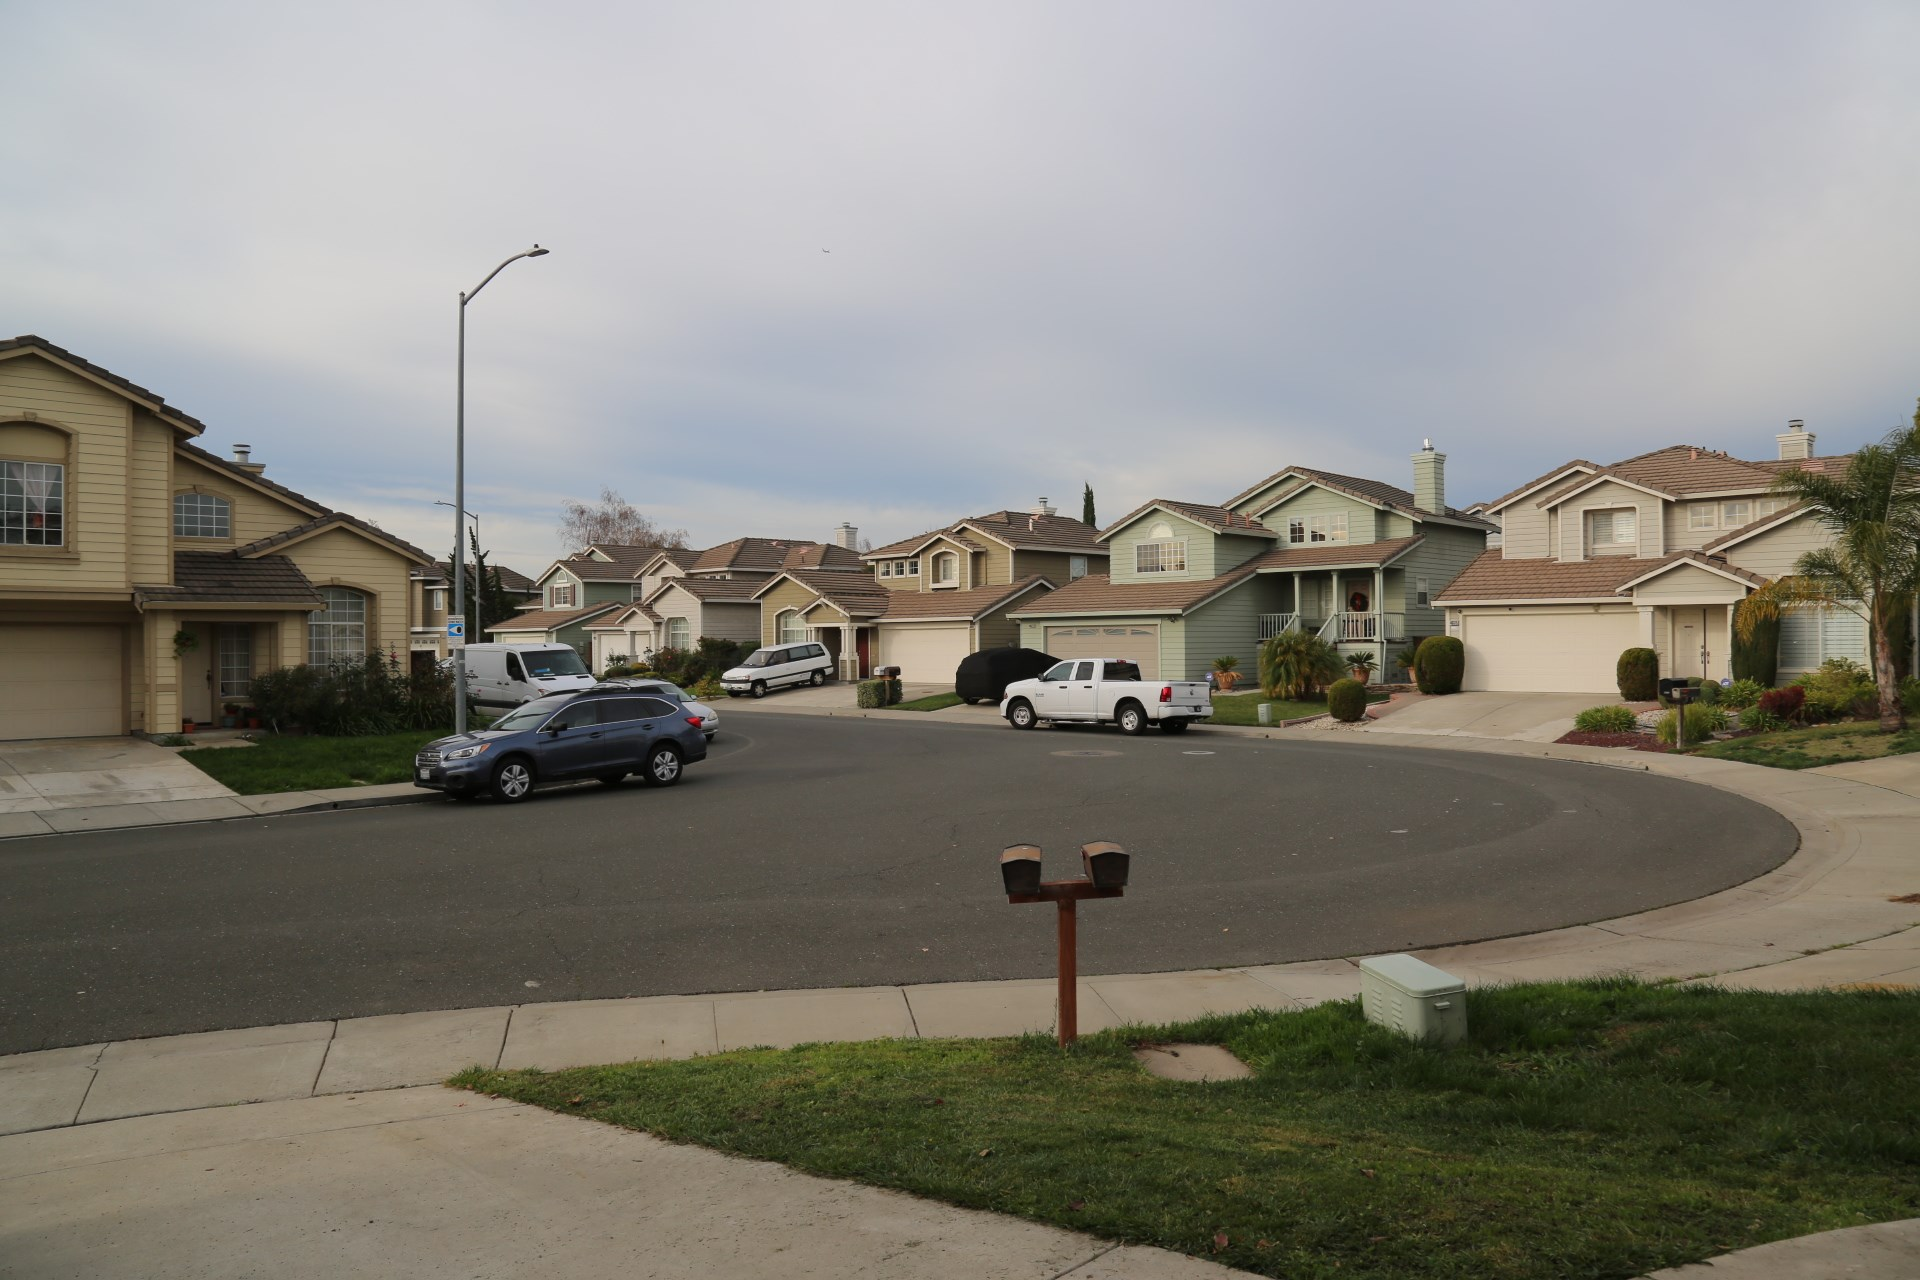 3 Bedroom House For Rent In Fremont Ca 28 Images Fremont Houses For Rent In Fremont